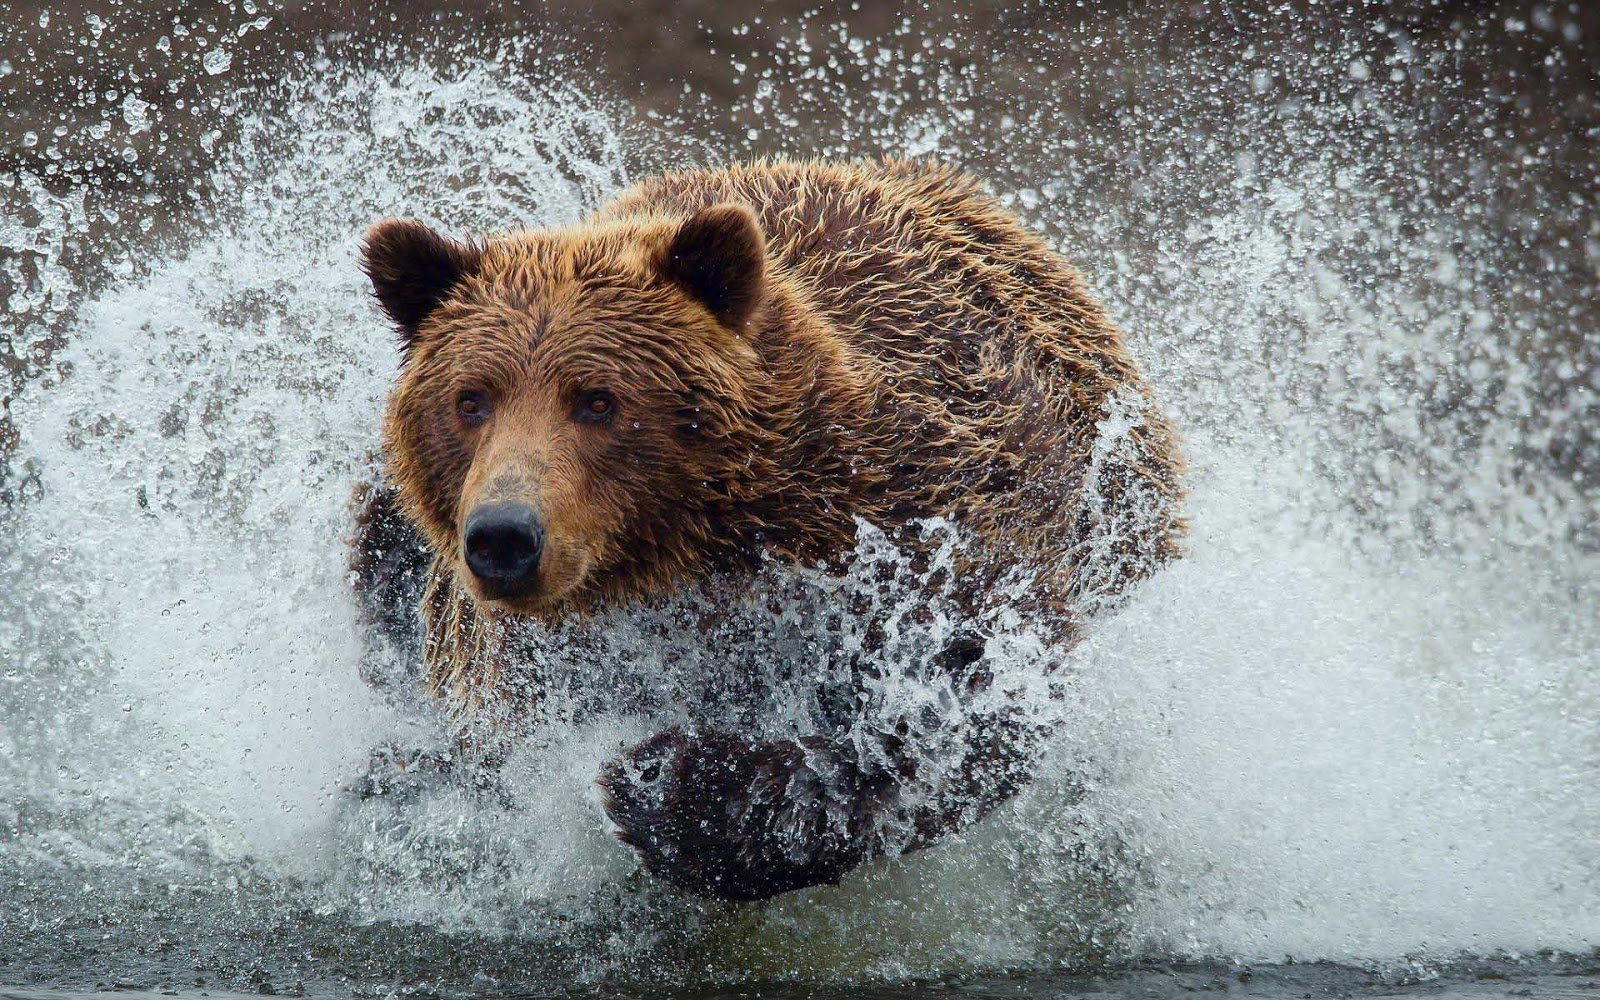 wallpaper-of-a-brown-bear-running-through-water-hd-bears-wallpapers